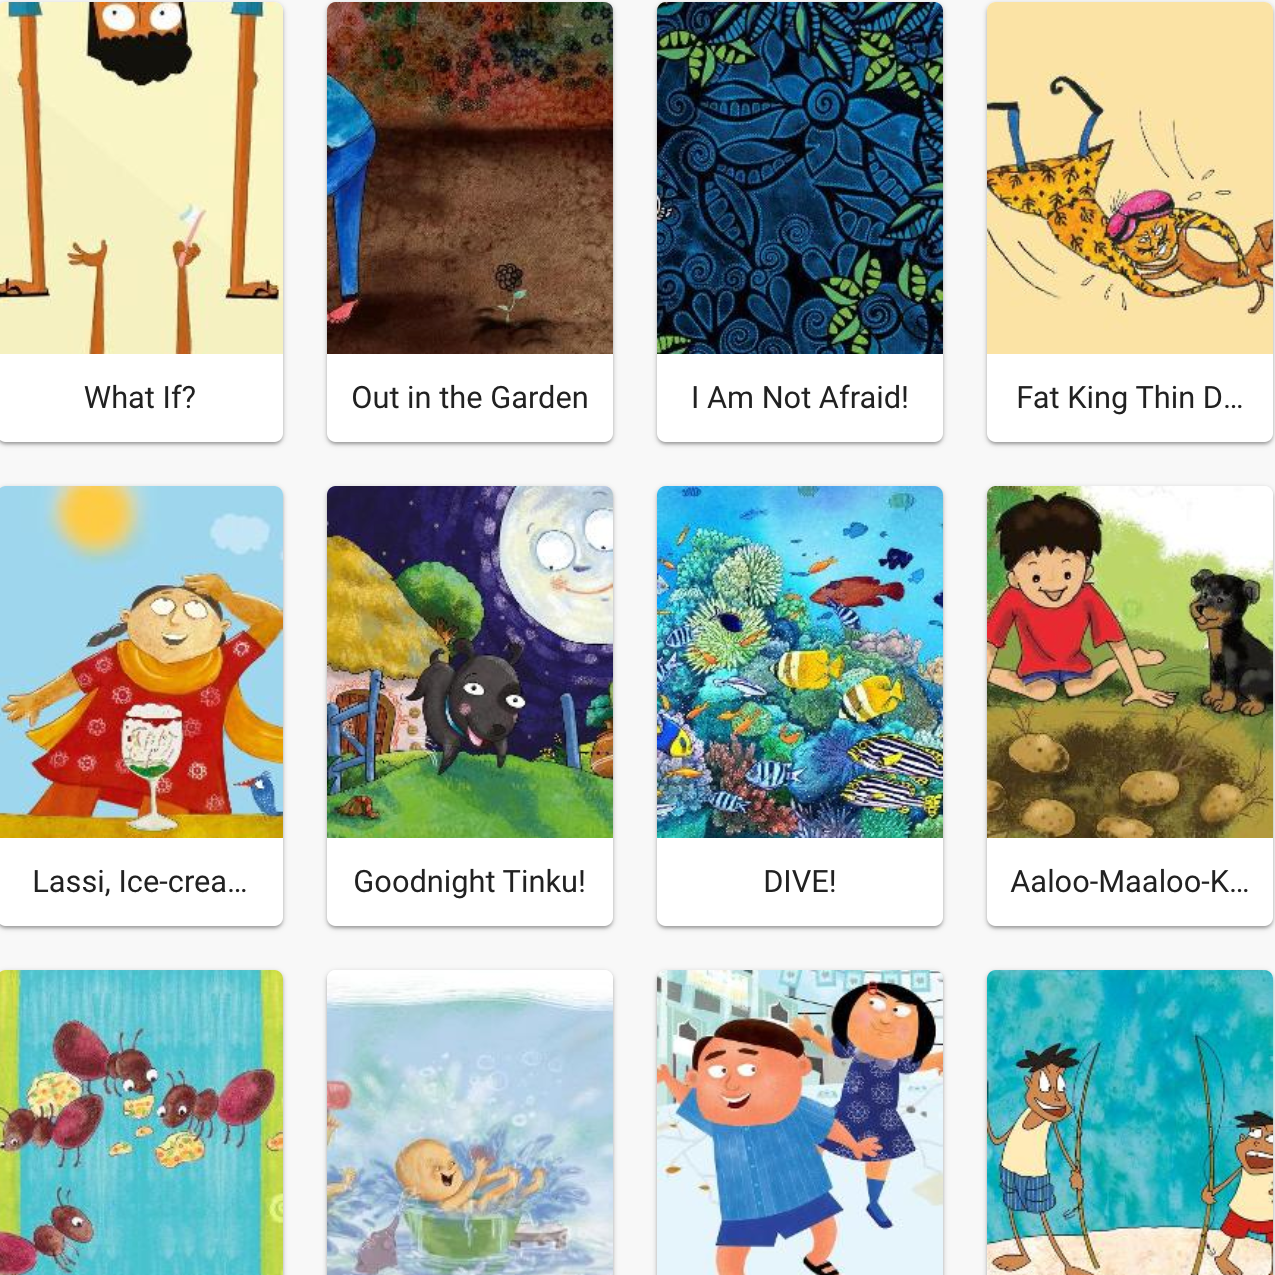 eBook Projects - With eBooks that can become interactive story apps. Program staff, teachers or volunteers can use Curious Reader to convert eBooks to apps.